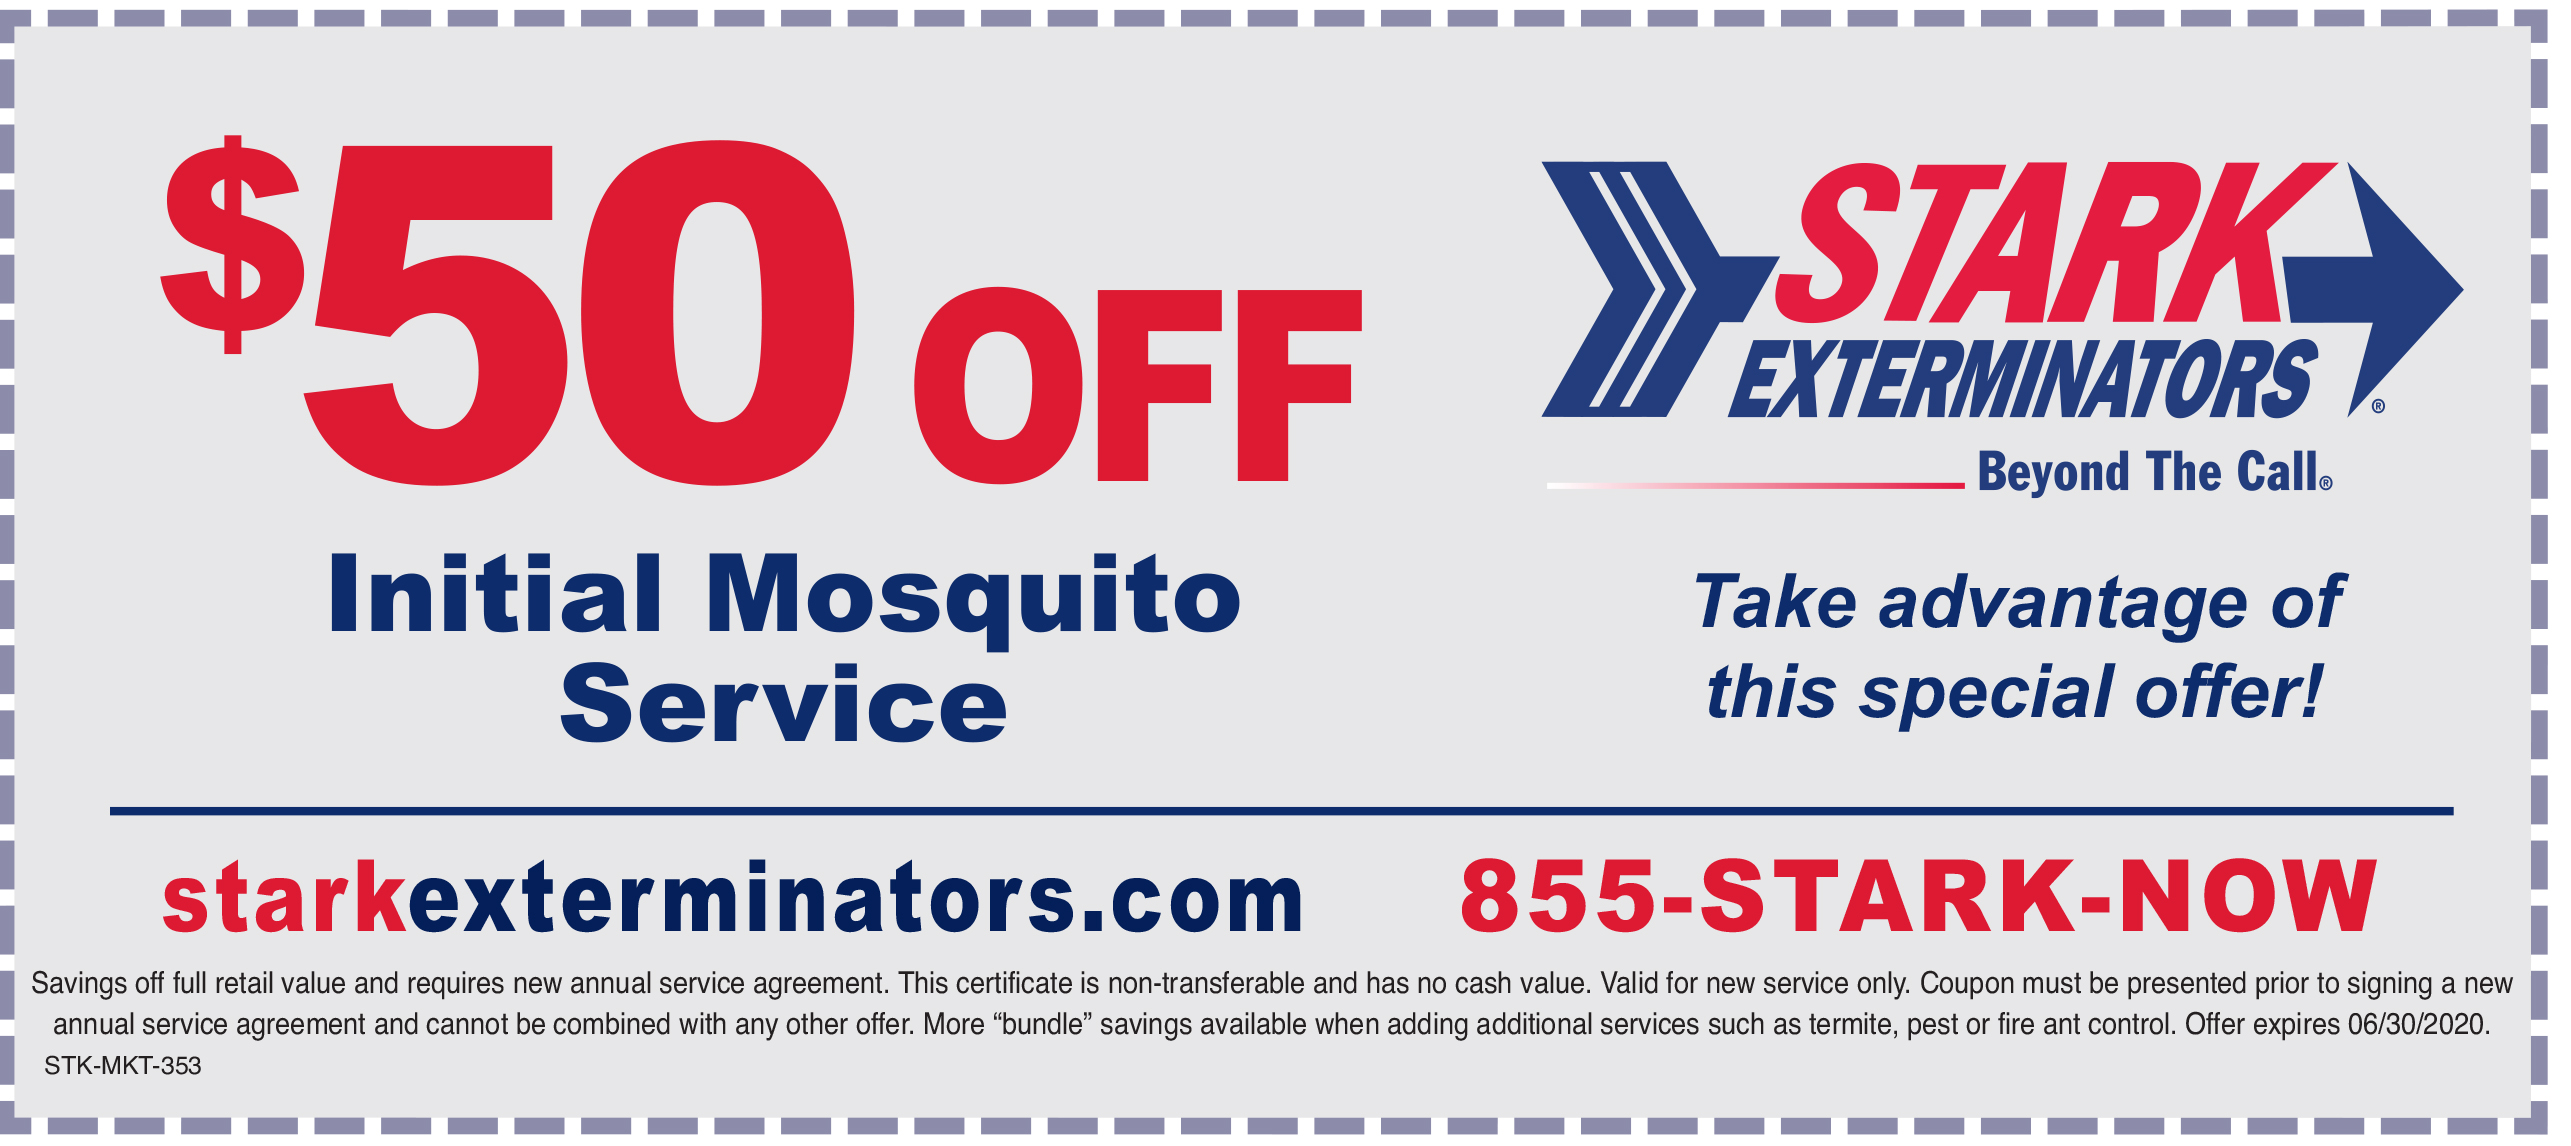 coupon-mosquito-stark-exp2020.jpg